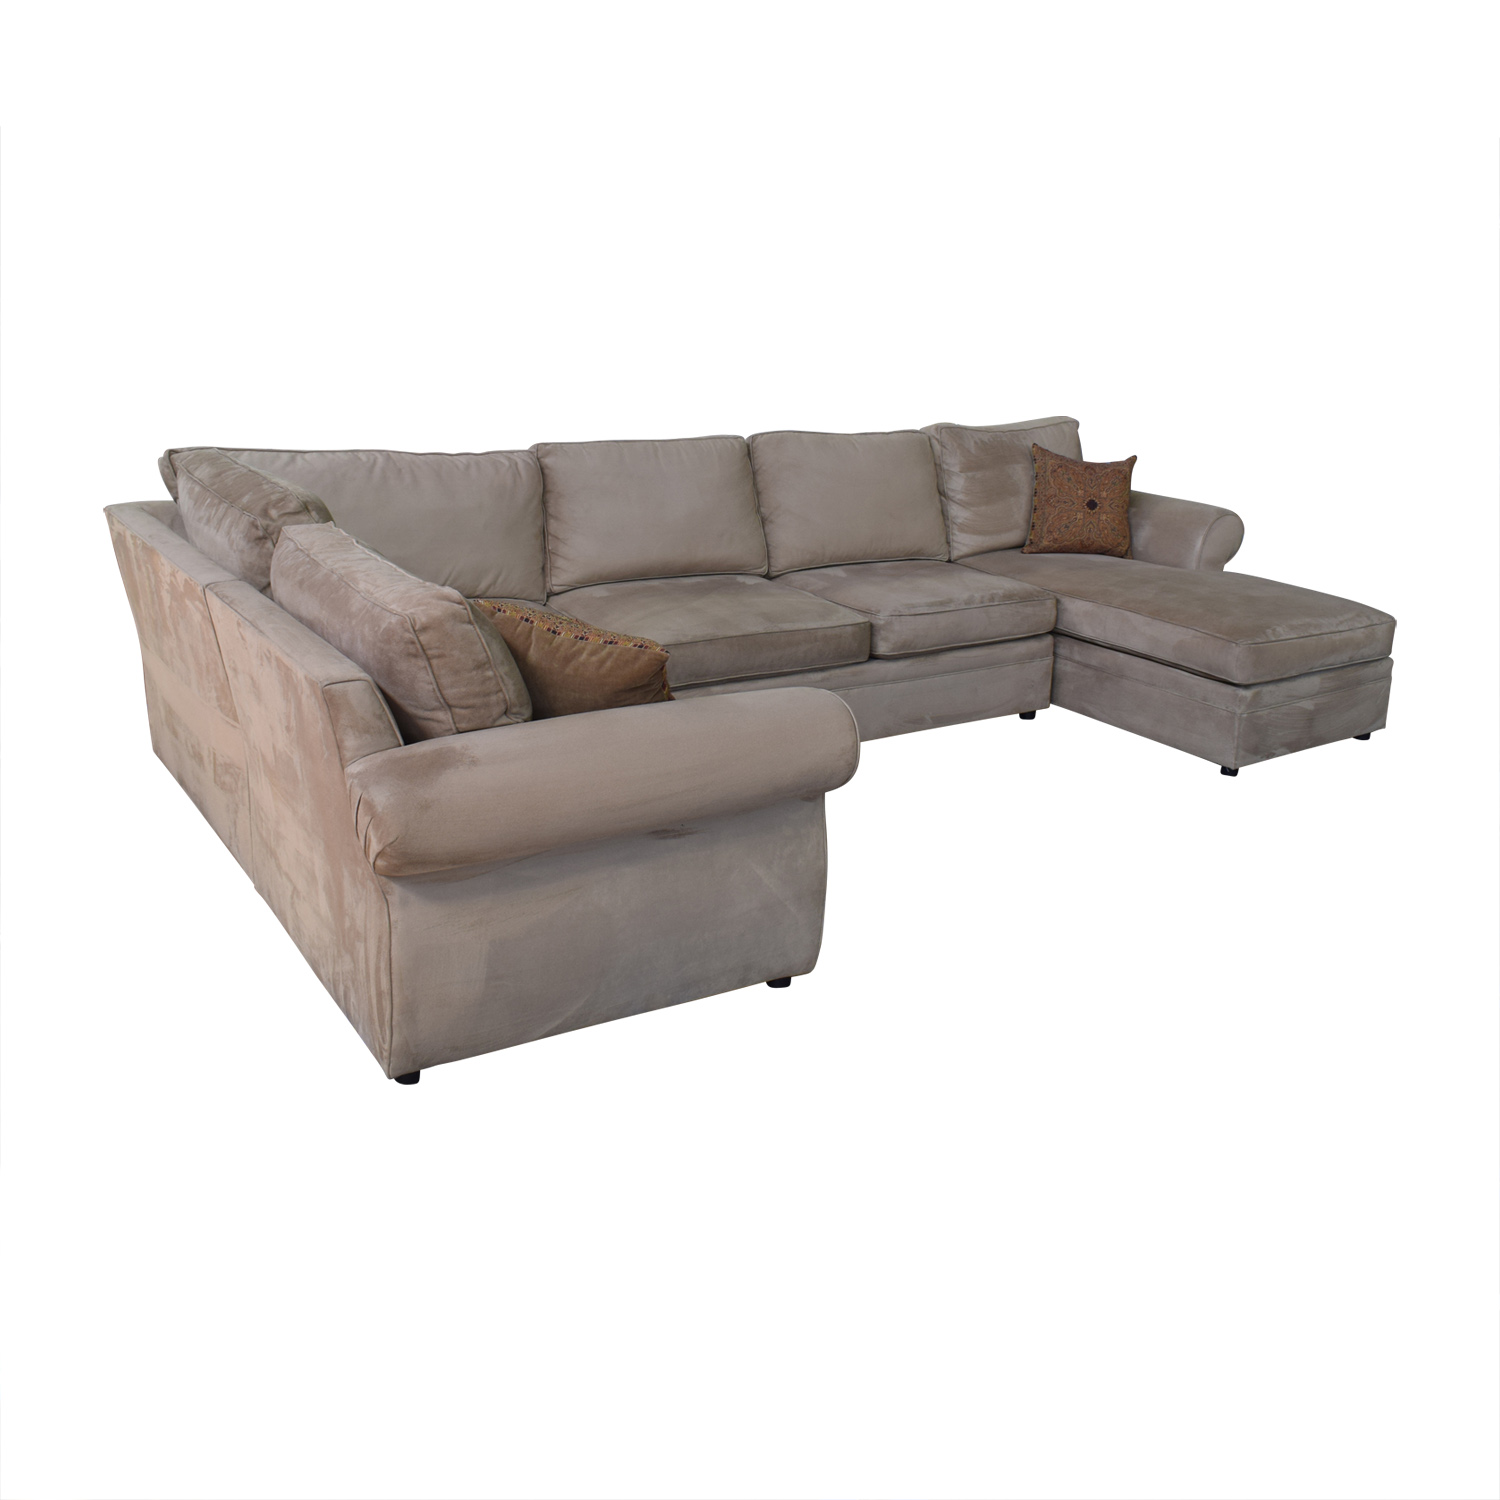 U Couch 83 Off Pottery Barn Pottery Barn U Shaped Sectional Sofas